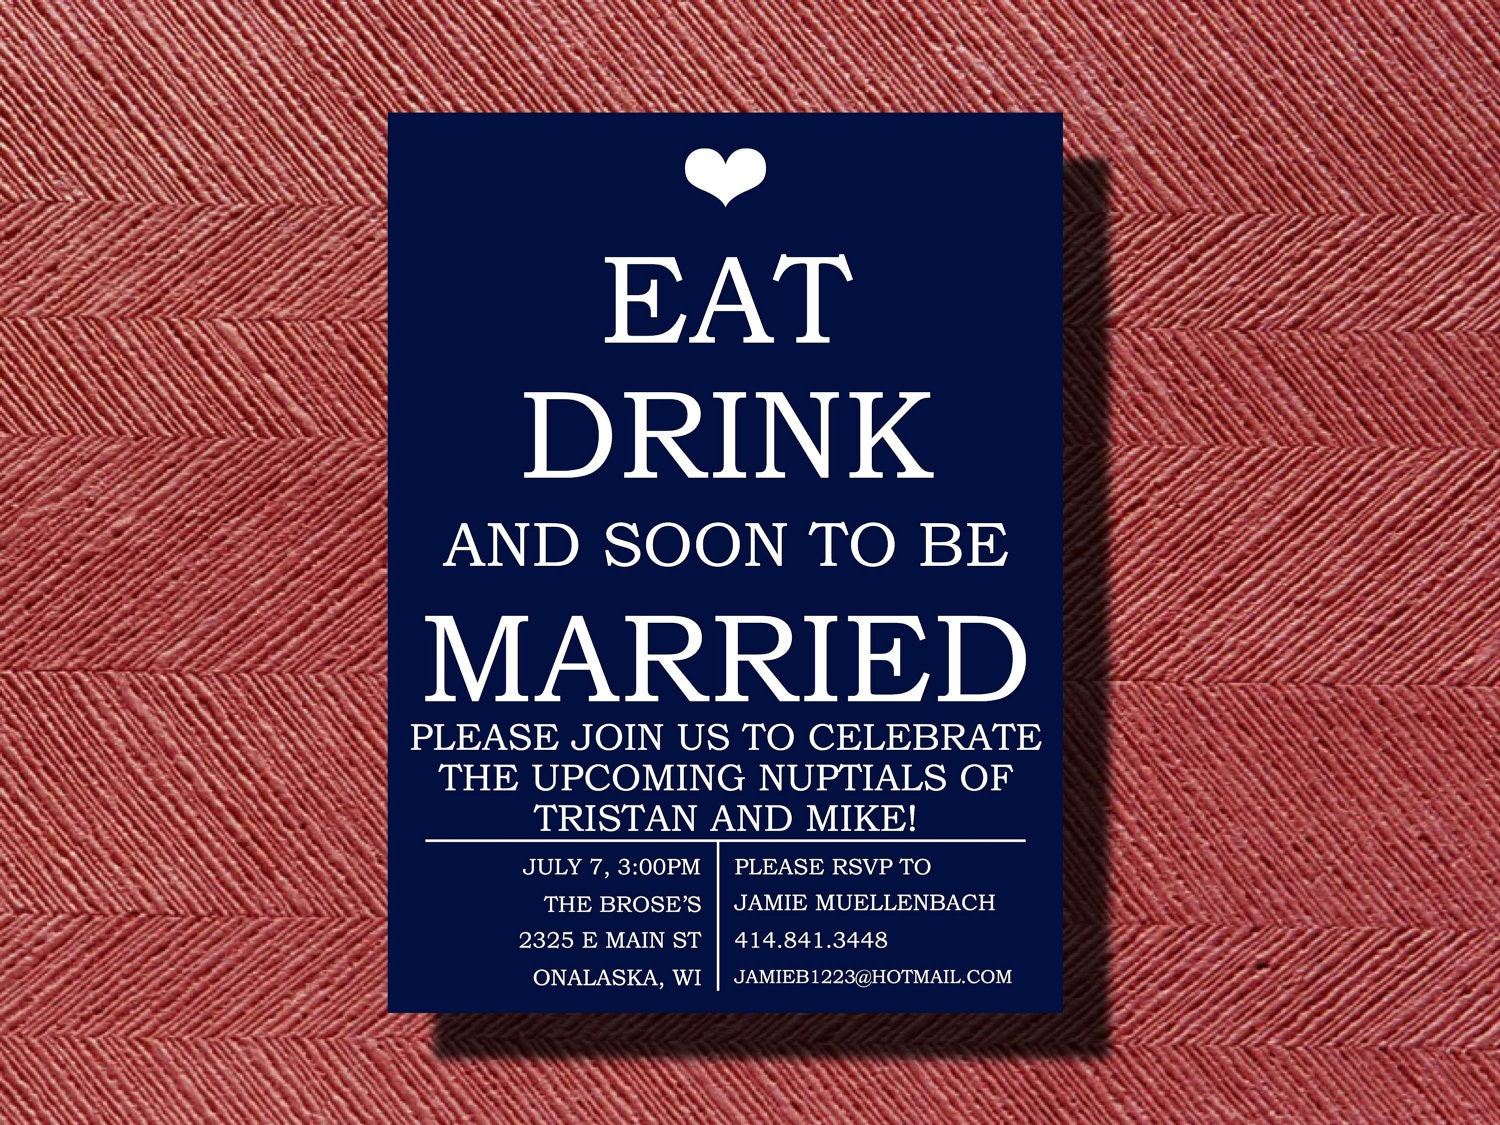 Funny Party Quotes Engagement Party Invitation Eat Drink And Be Married